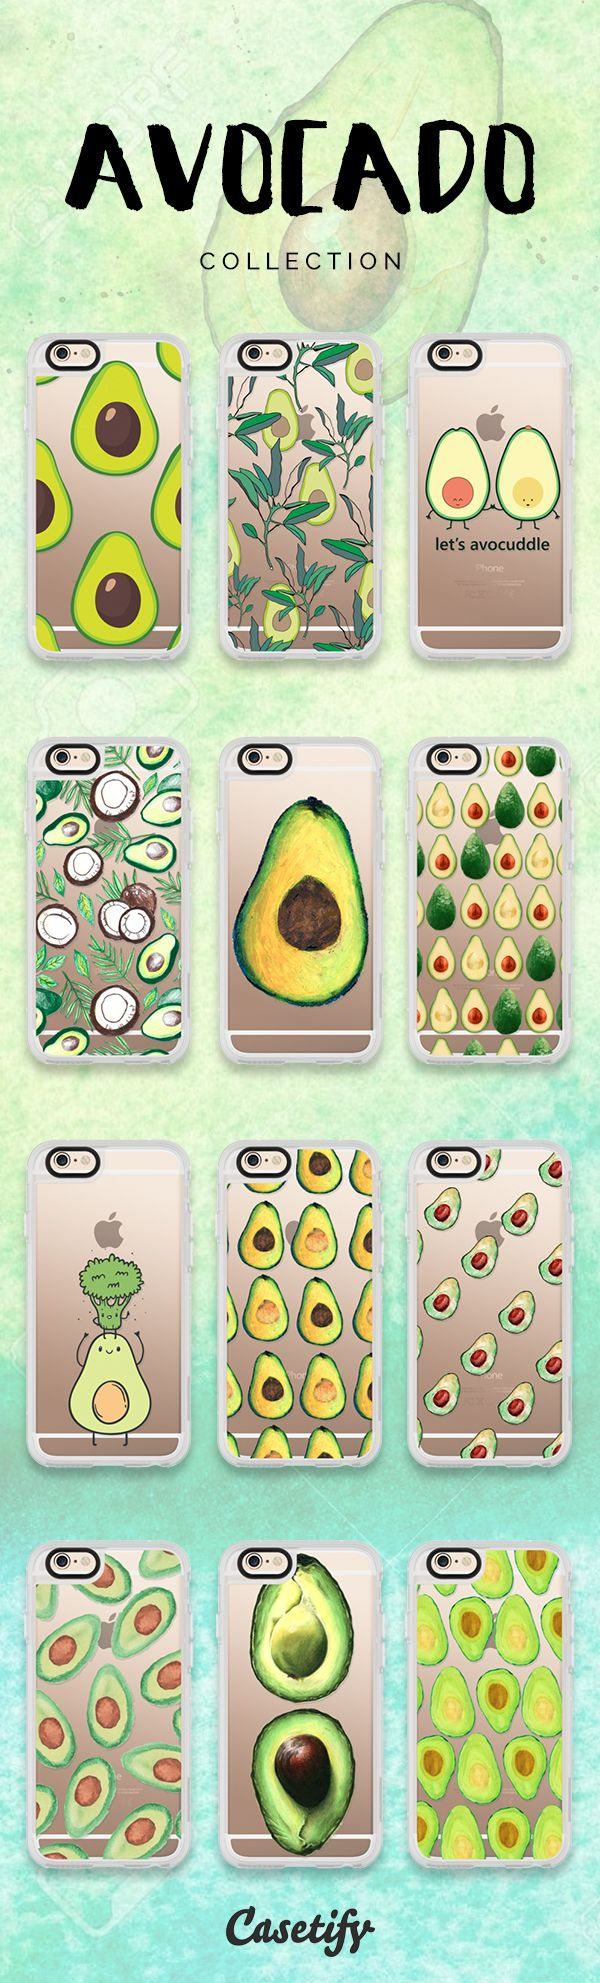 Pin by Casetify on SHINE THROUGH iPhone case Ideas | Casetify